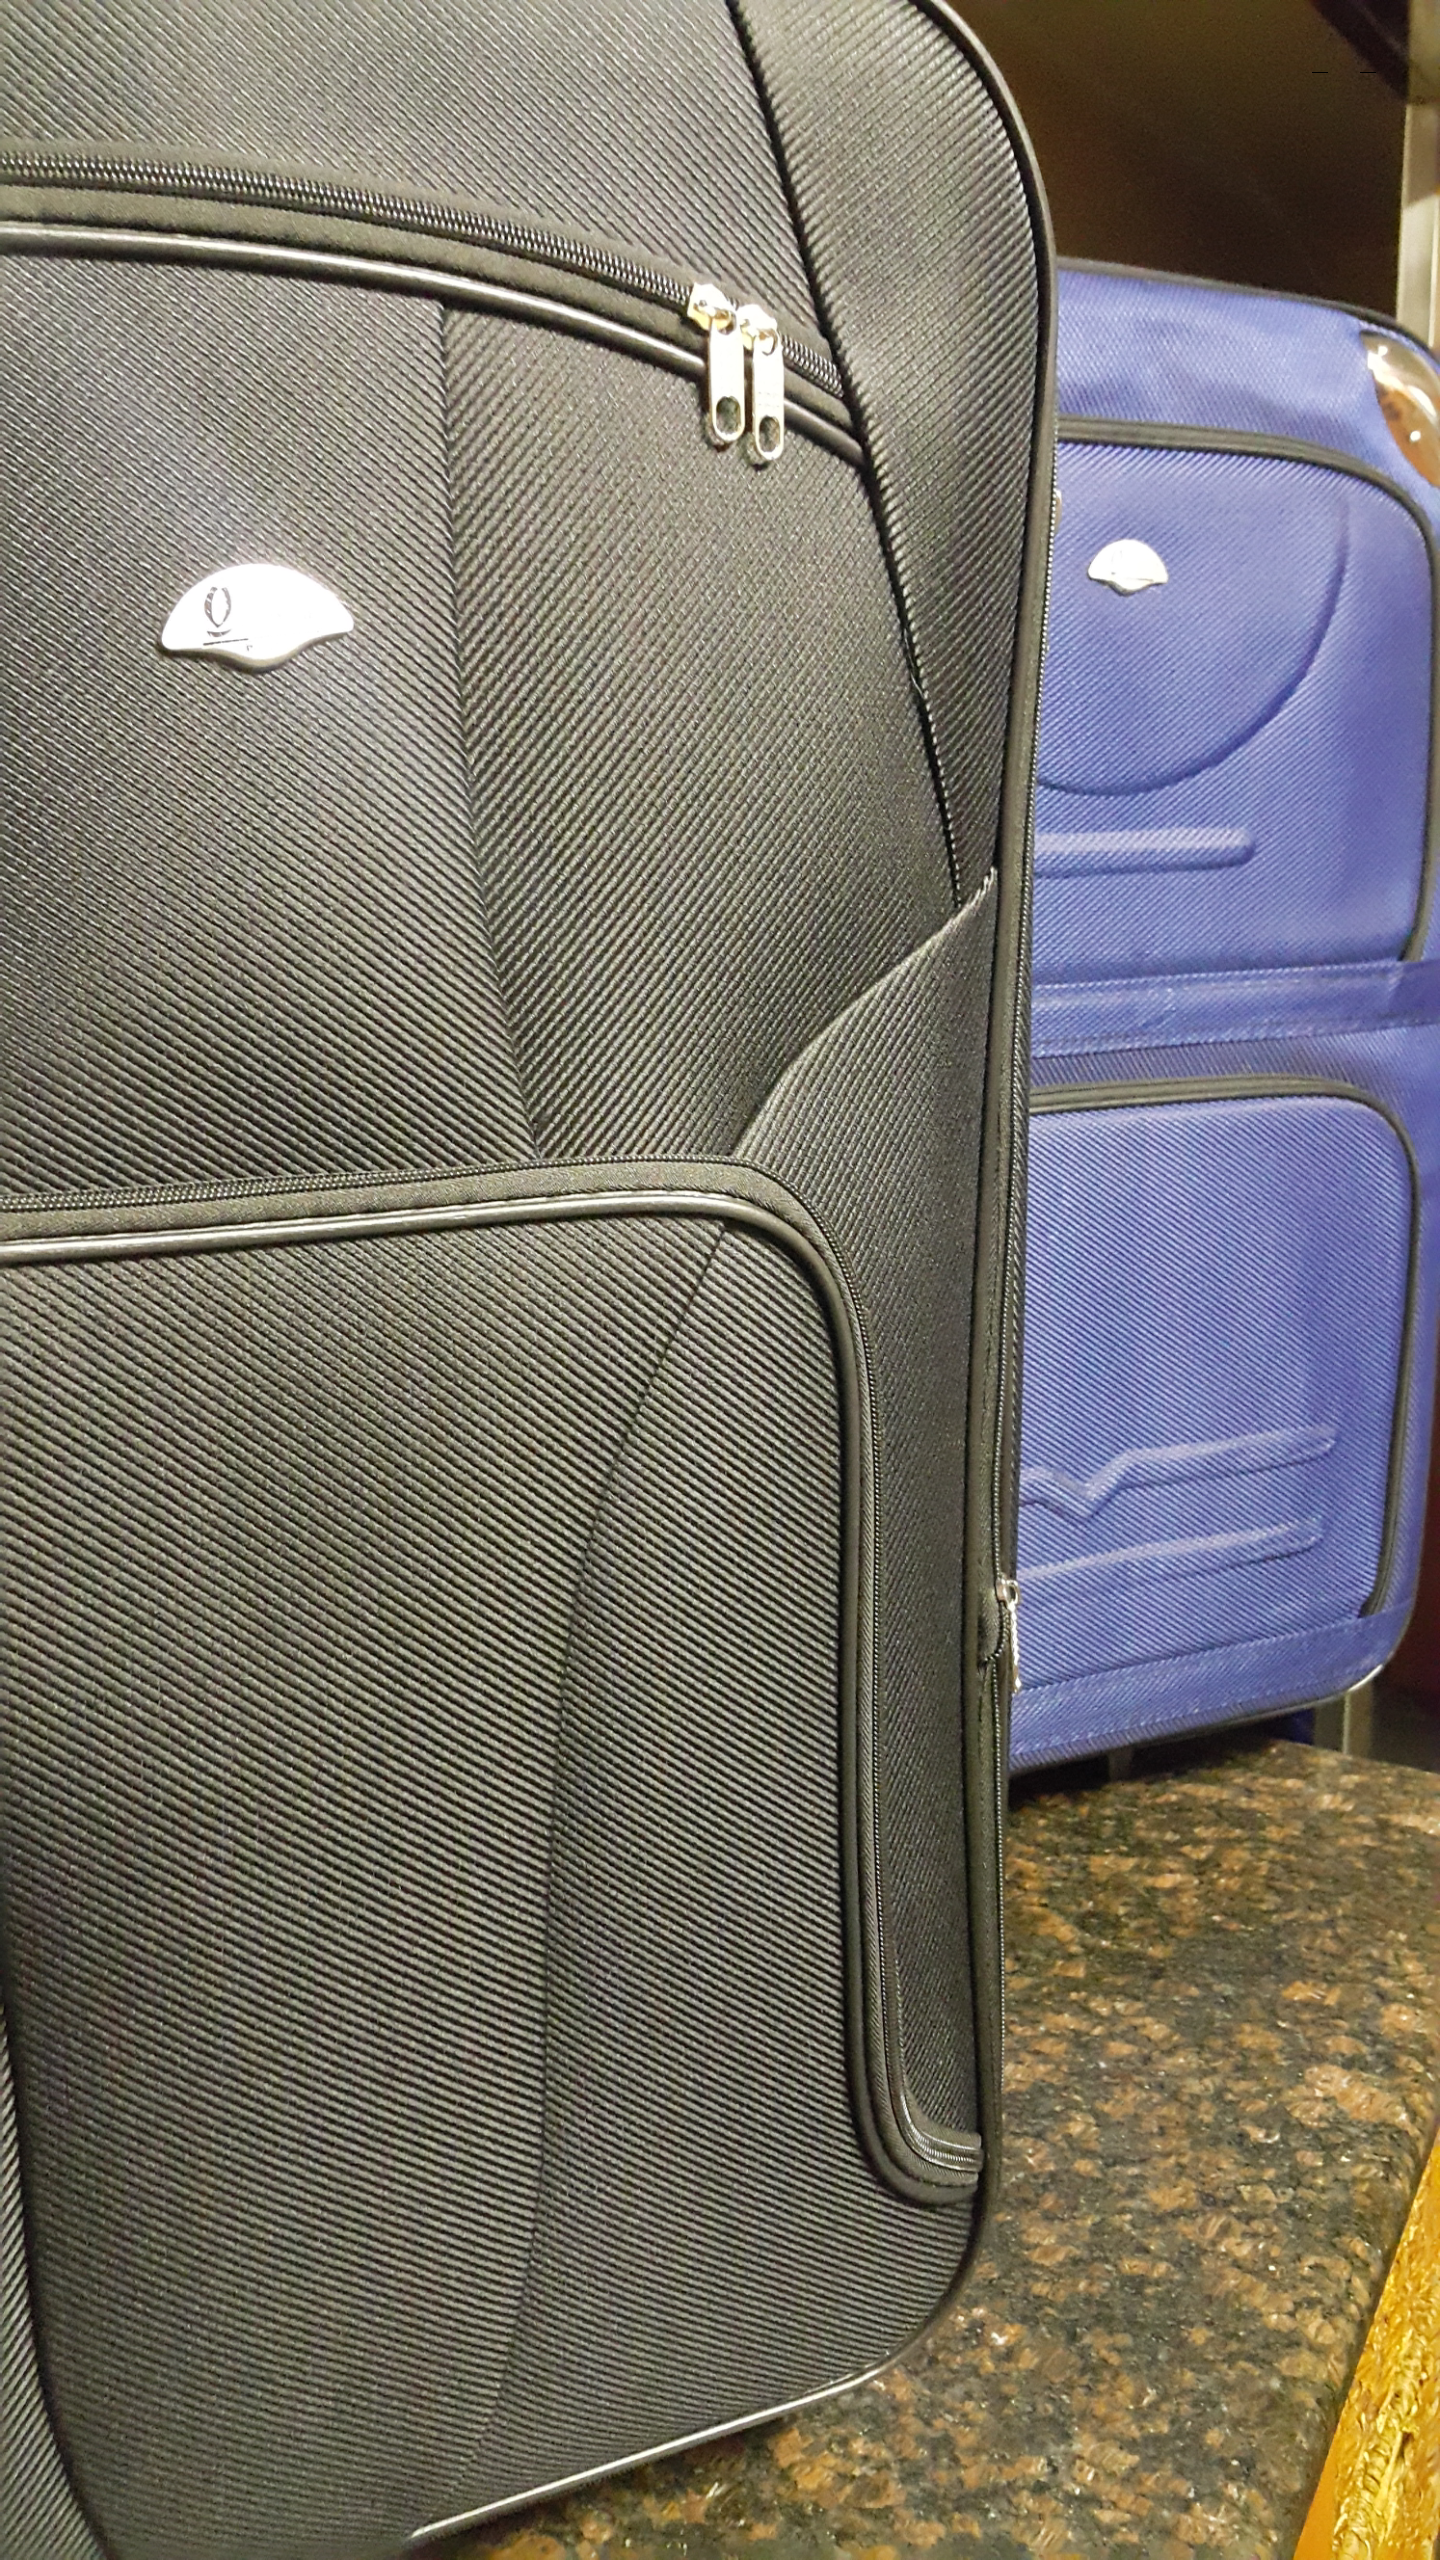 Close Up Pictures of our Upmarket Denier Fabrics Used on our Exclusive Travel Sets